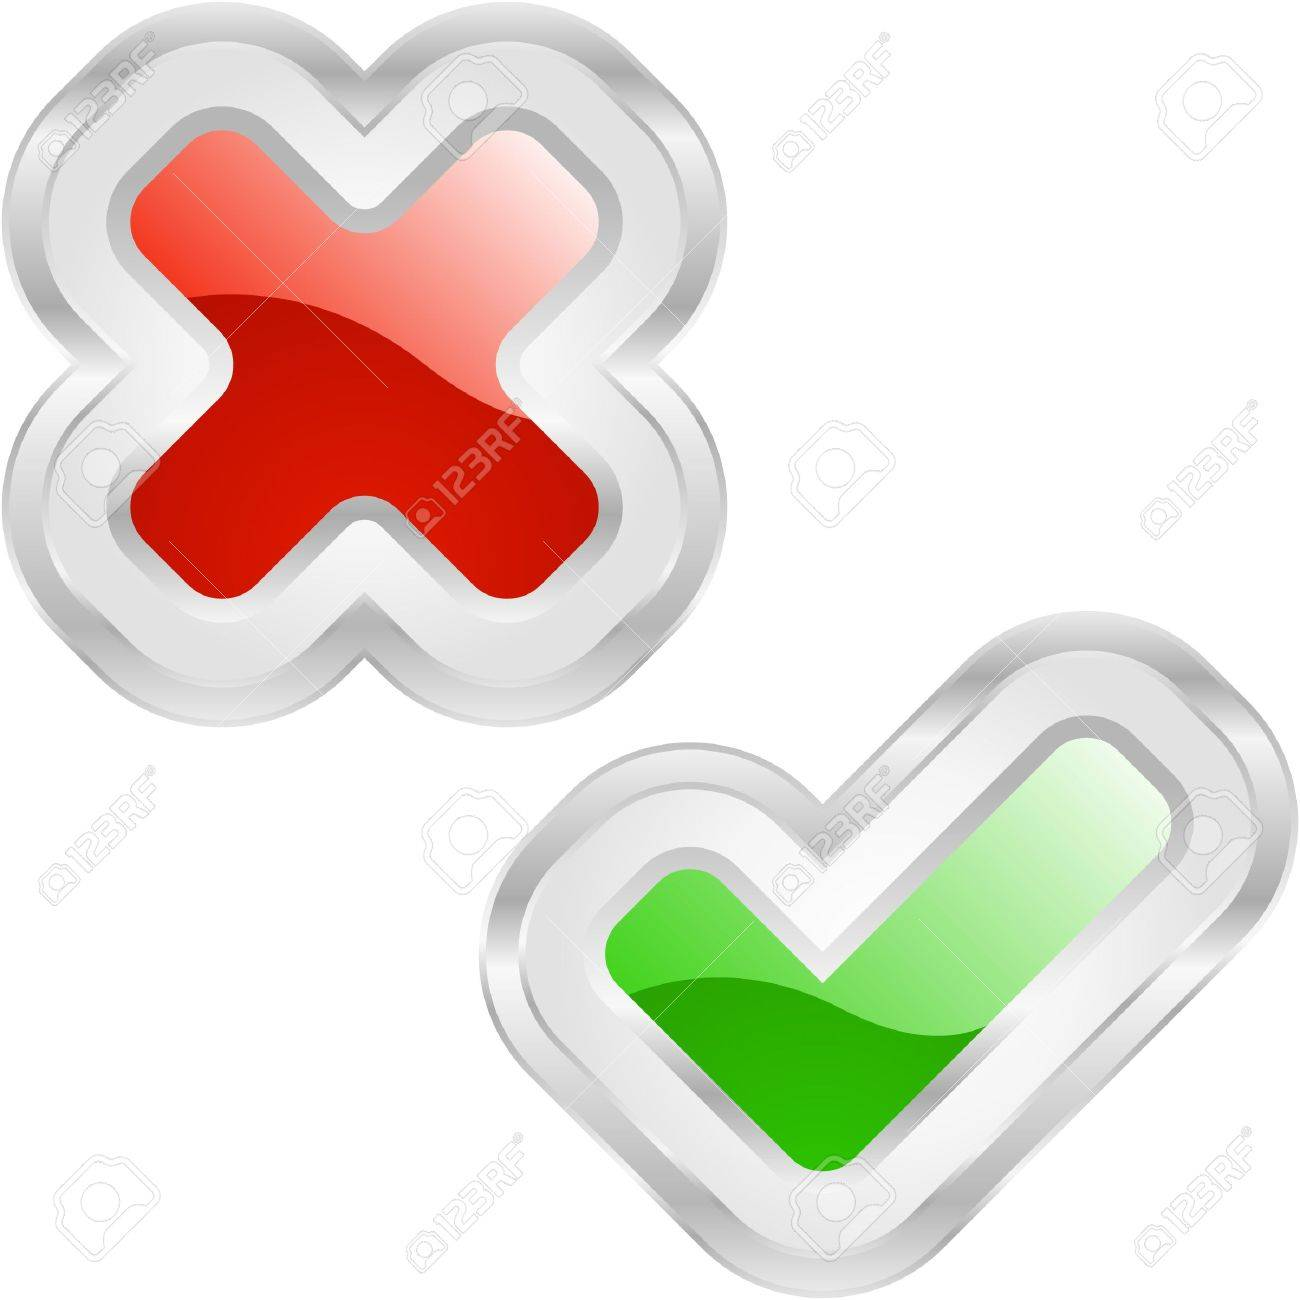 Approved and rejected buttons. Stock Vector - 6876888